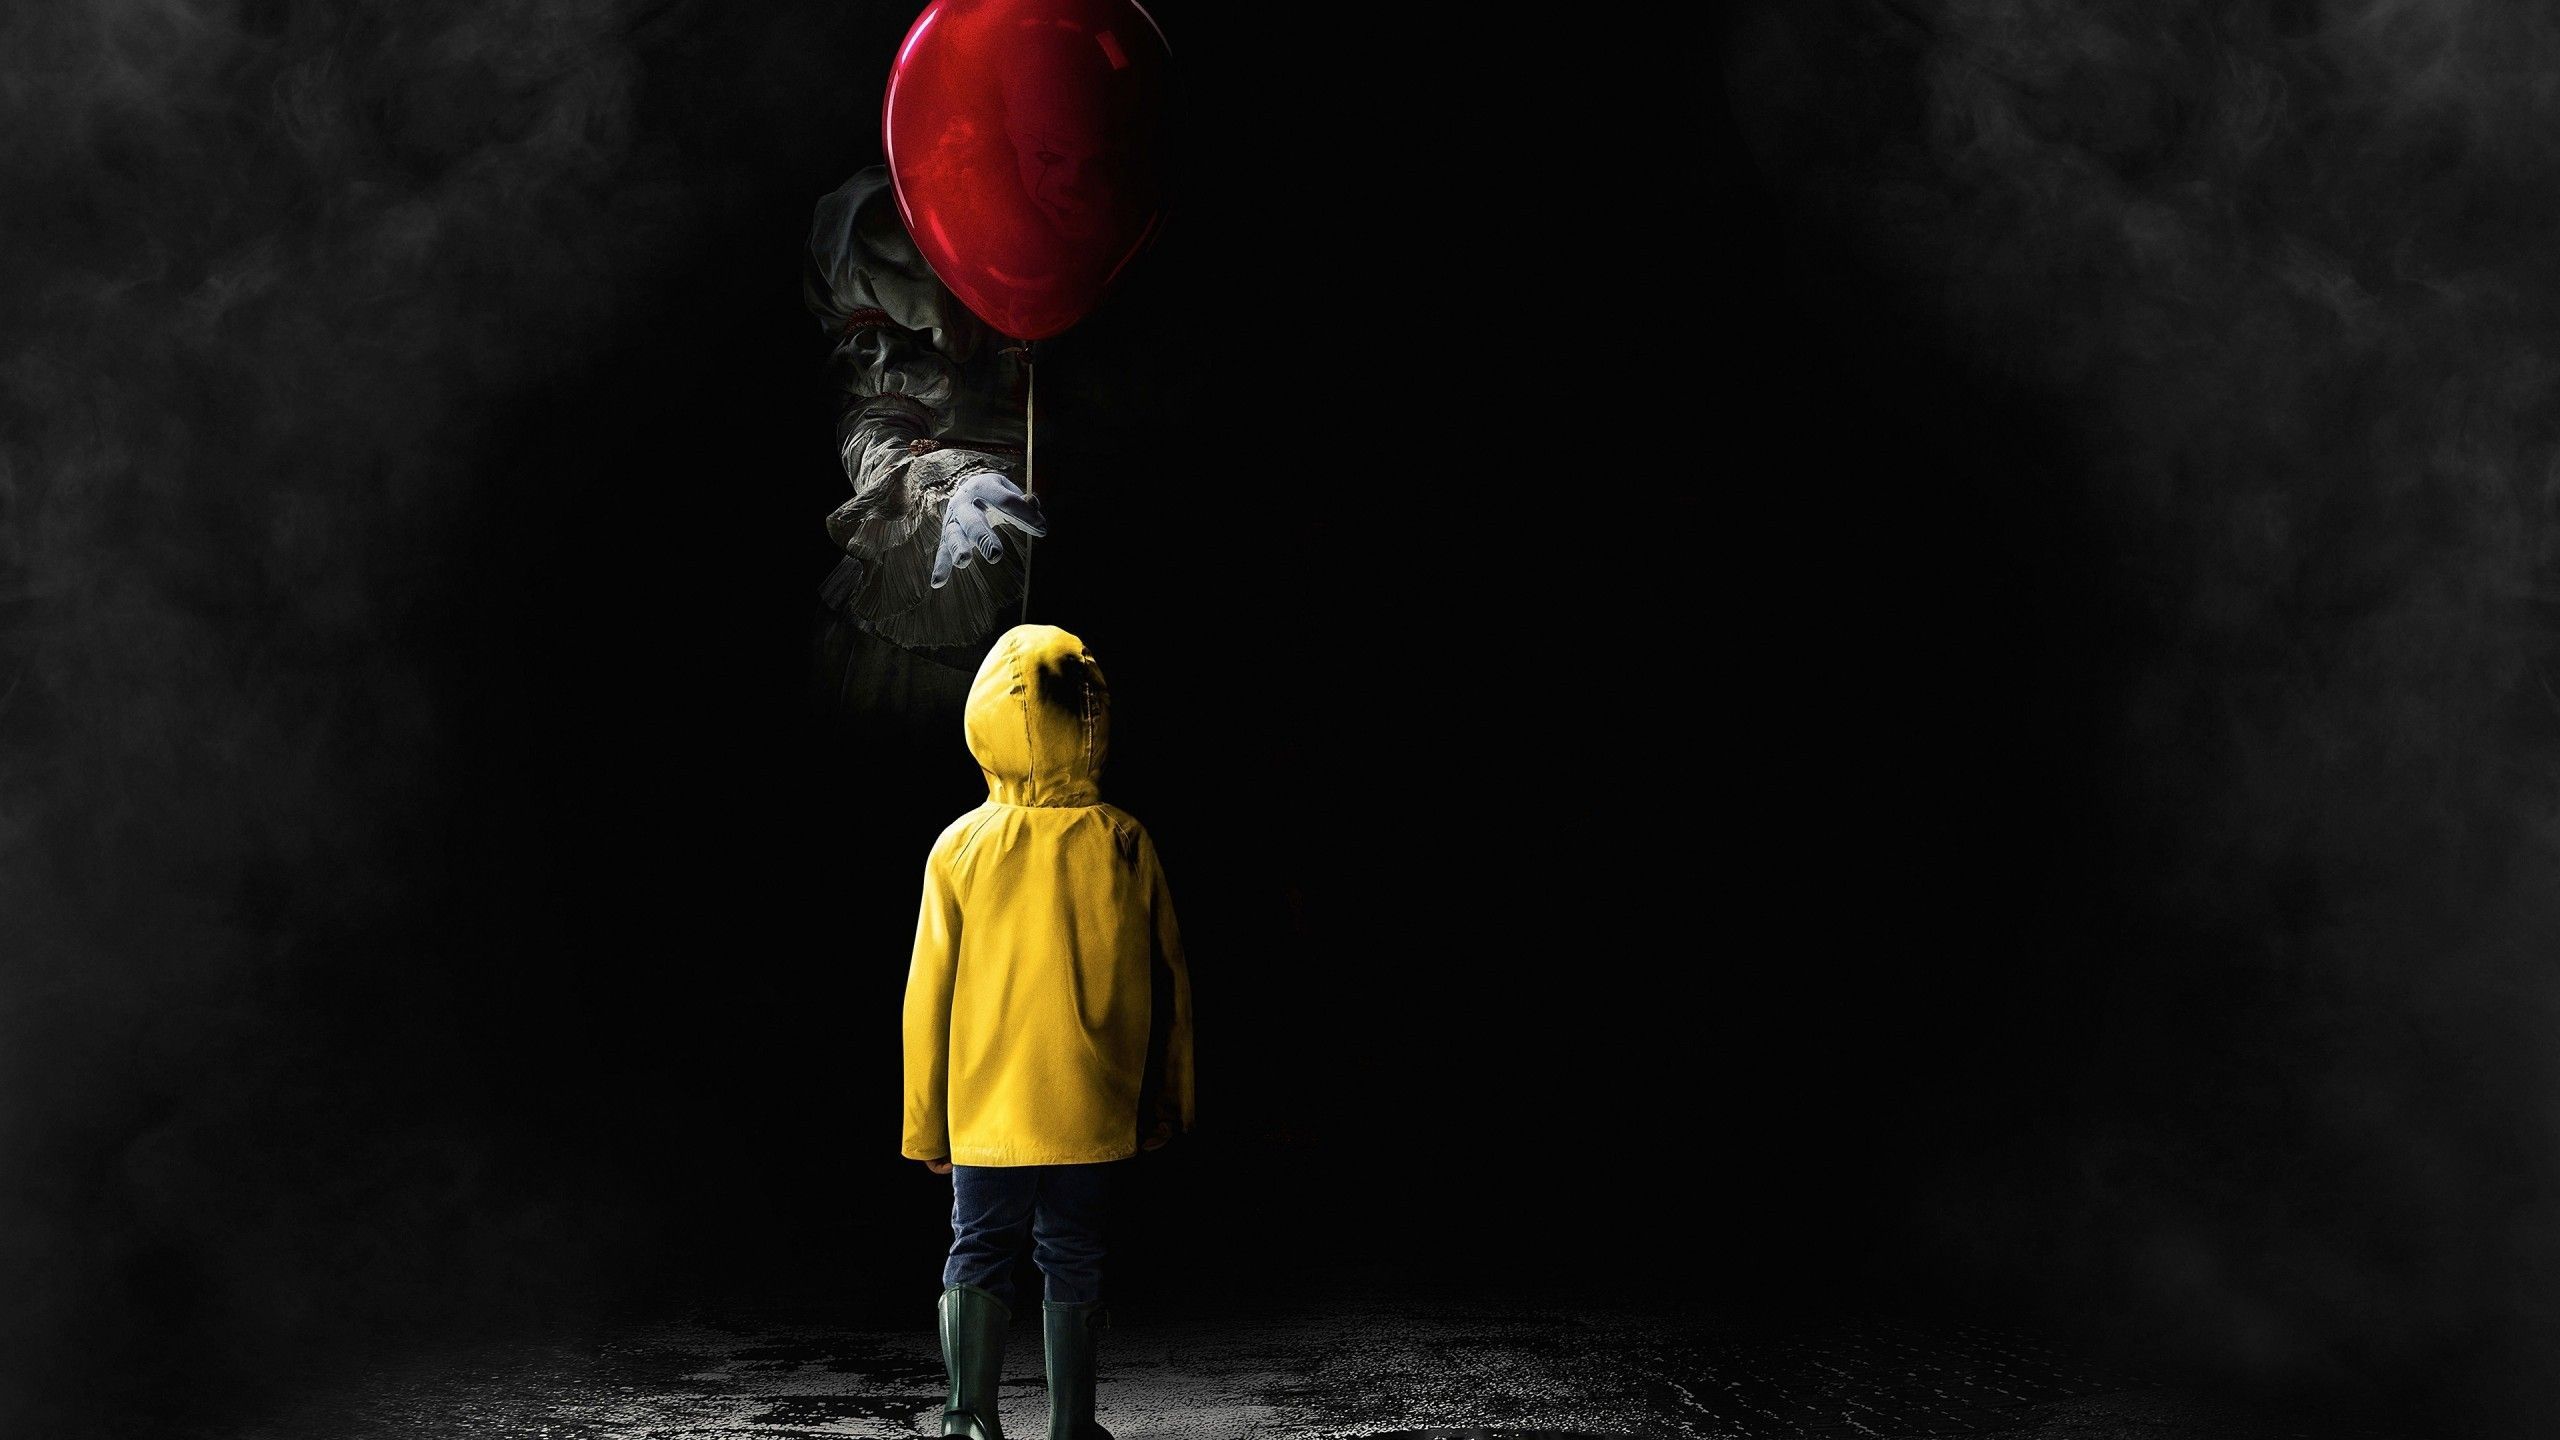 2560x1440 Download 2560x1440 It 2017, Clown, Horror Wallpapers for ...